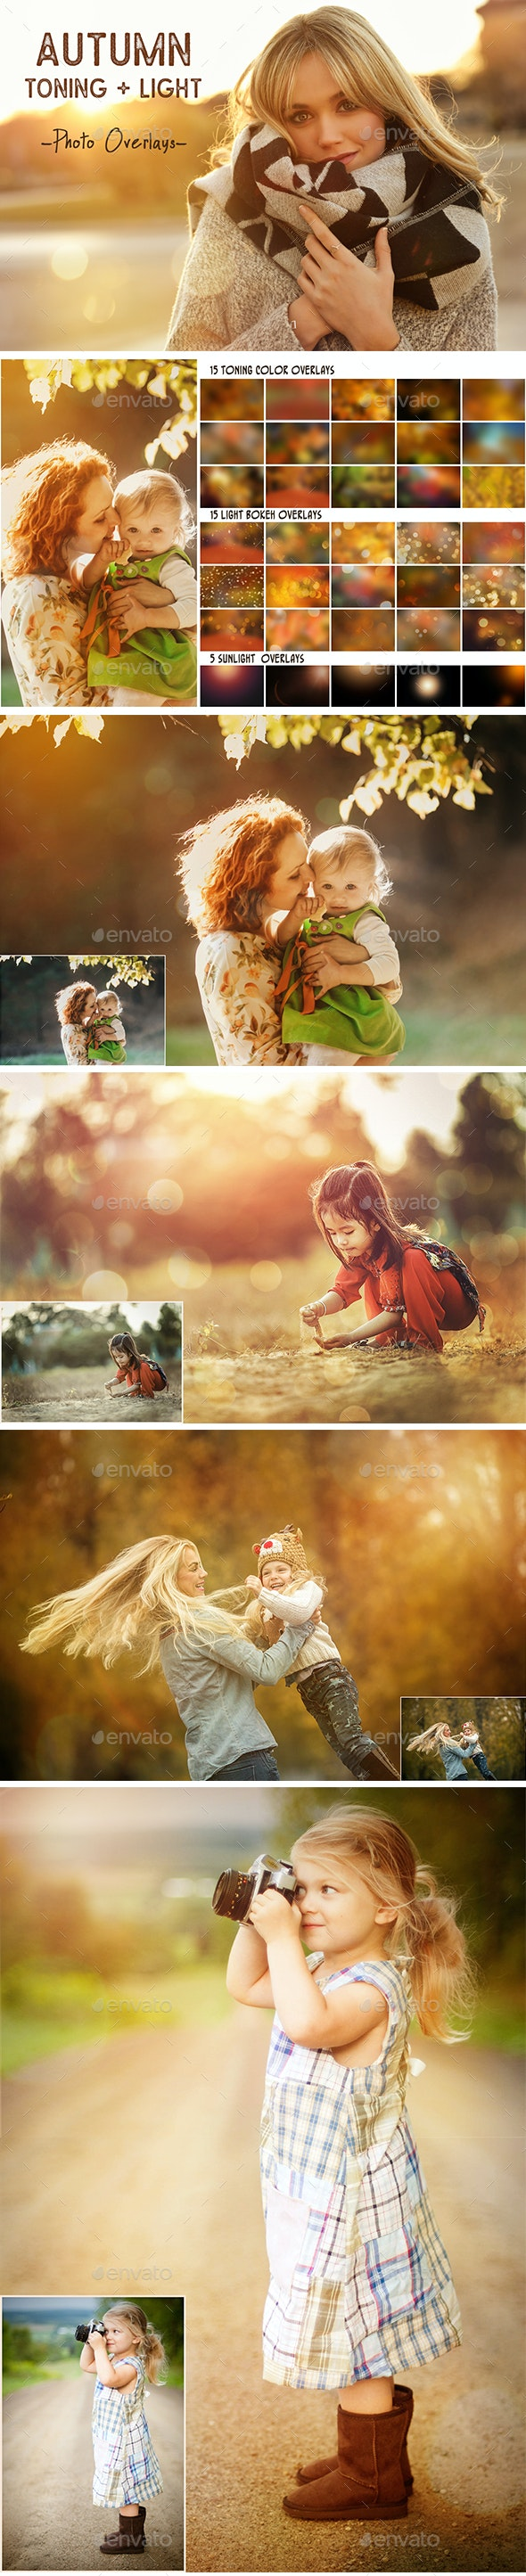 Autumn toning color and light photo overlays - Artistic Photo Templates